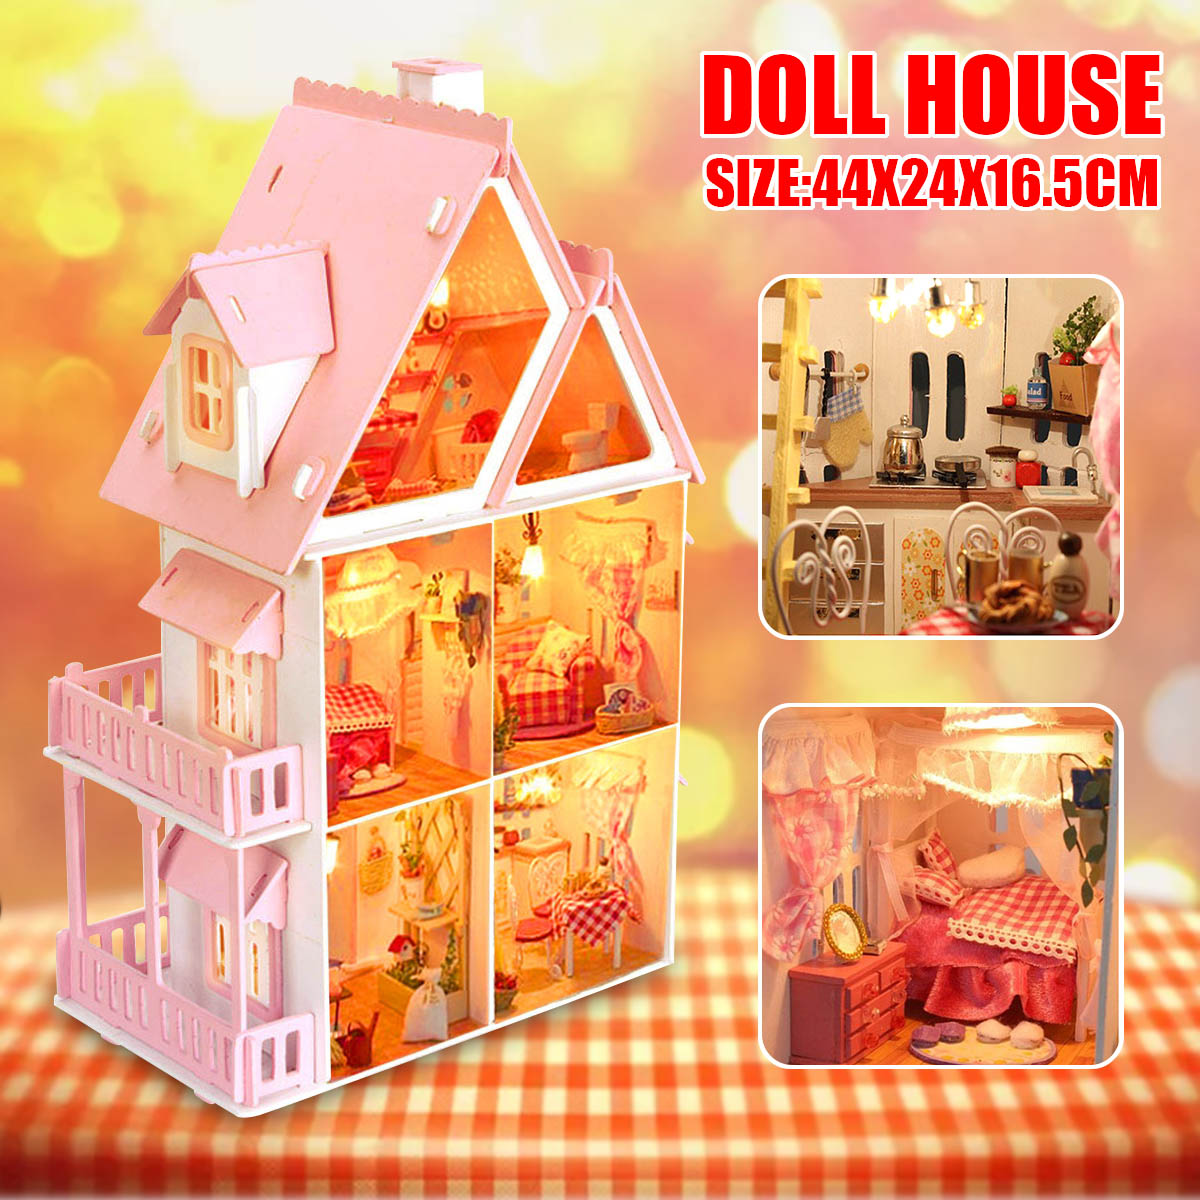 Details About Modern Doll House Kit Wooden Kids Girls Play Dollhouse Mansion Furniture Toy Diy